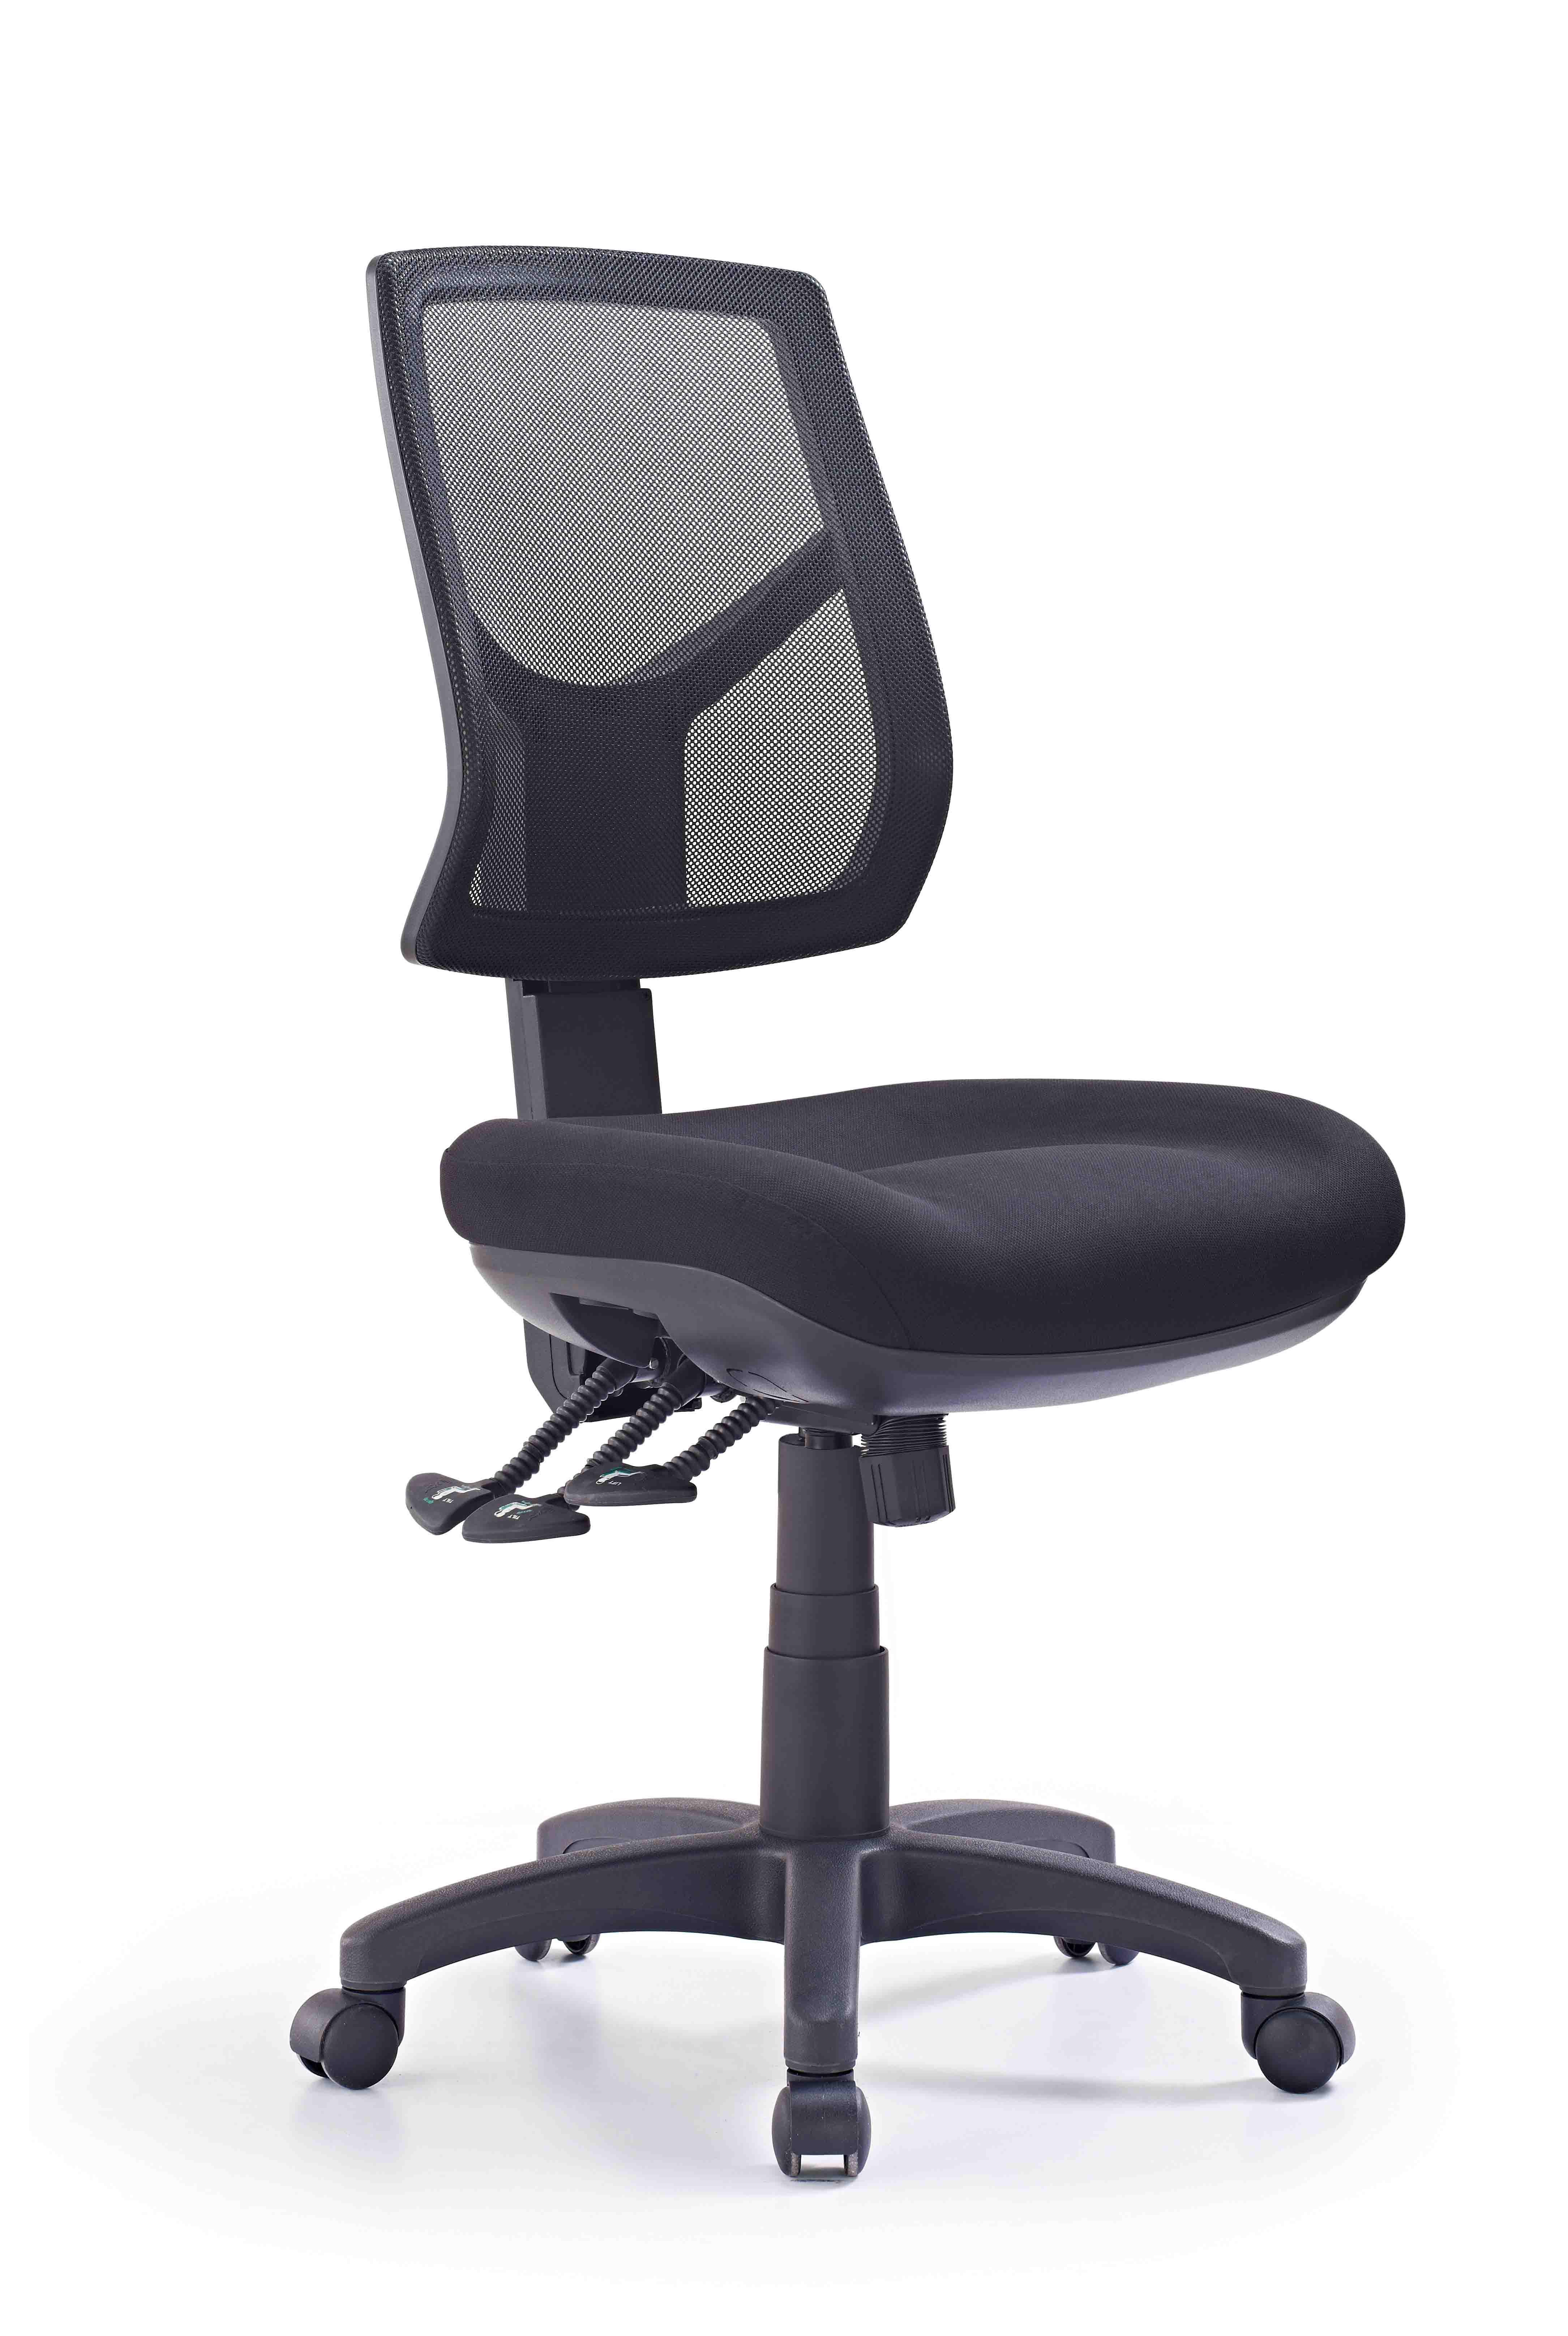 hino mesh high back chair without arms black fabric stuart and